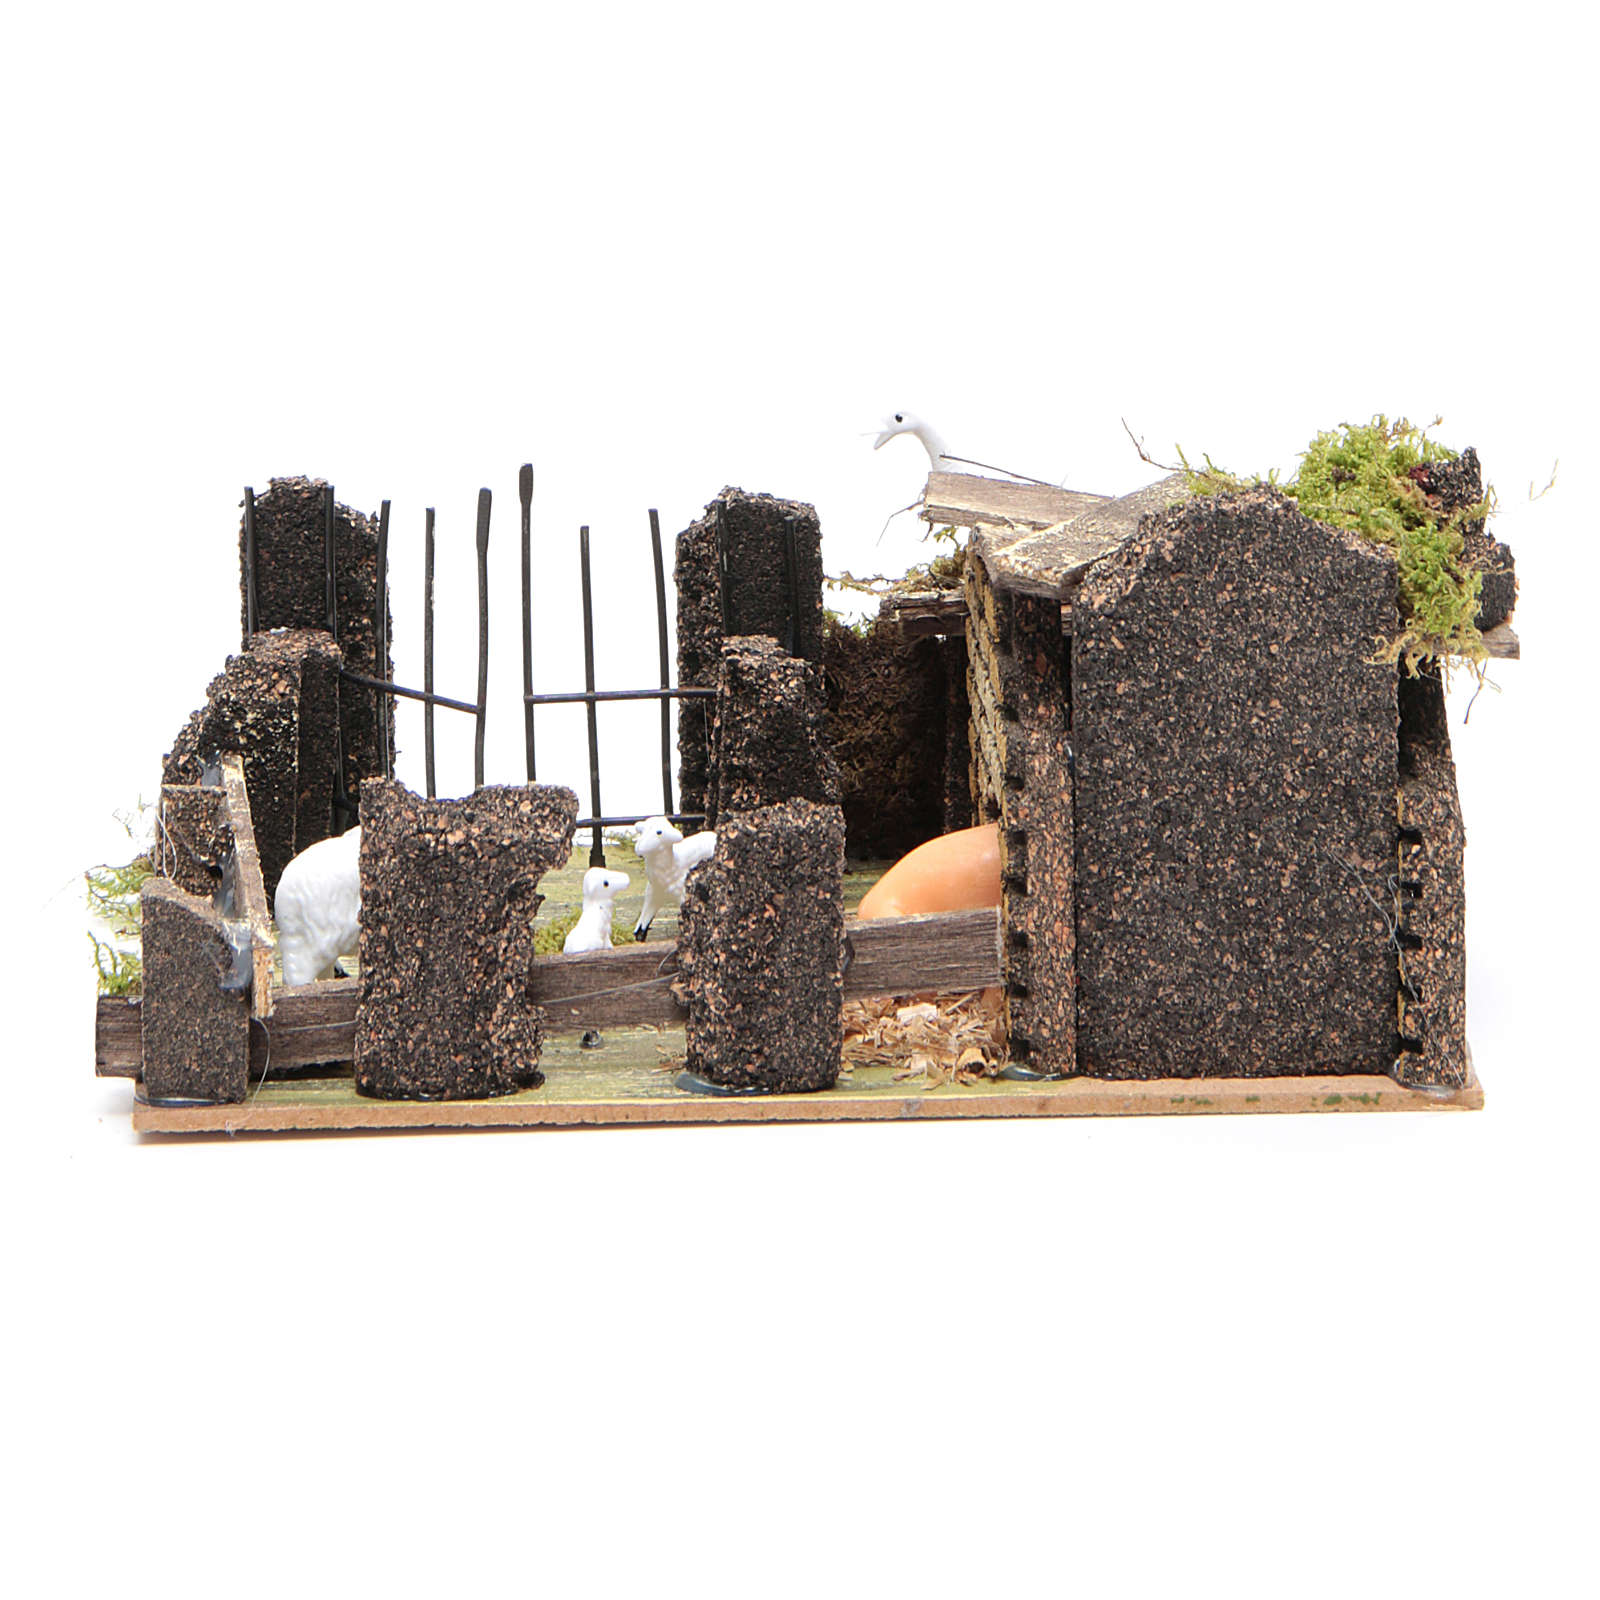 Sheep corral with sheep 9.5X20X14cm, nativity setting 3